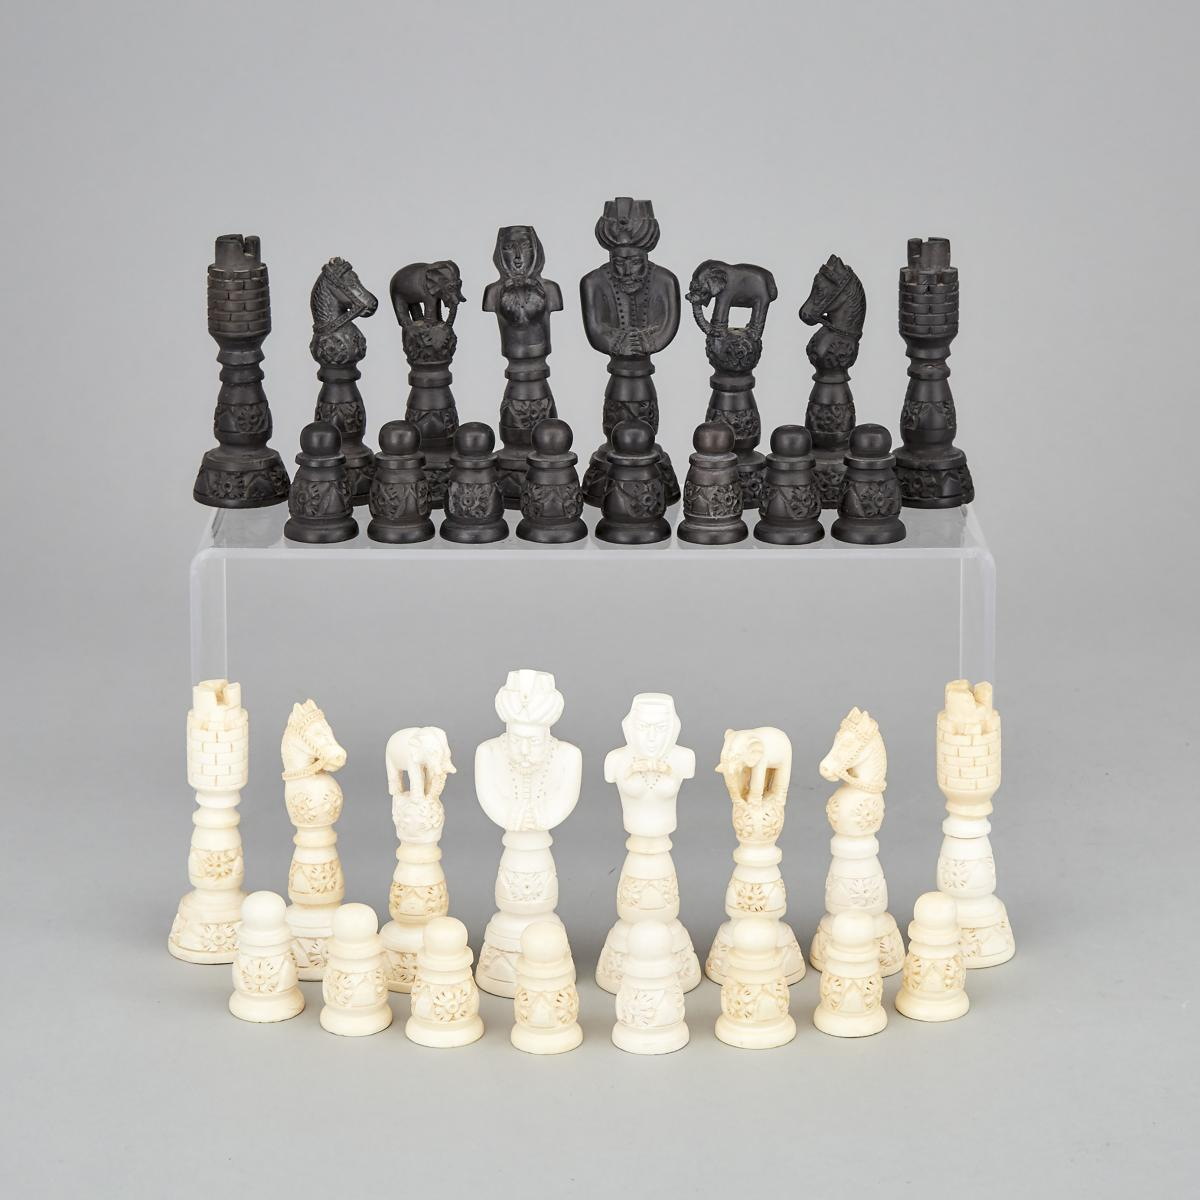 Turkish Turned and Carved Meerschaum Chess Set, early-mid 20th century, King height 4.5 in — 11.4 cm